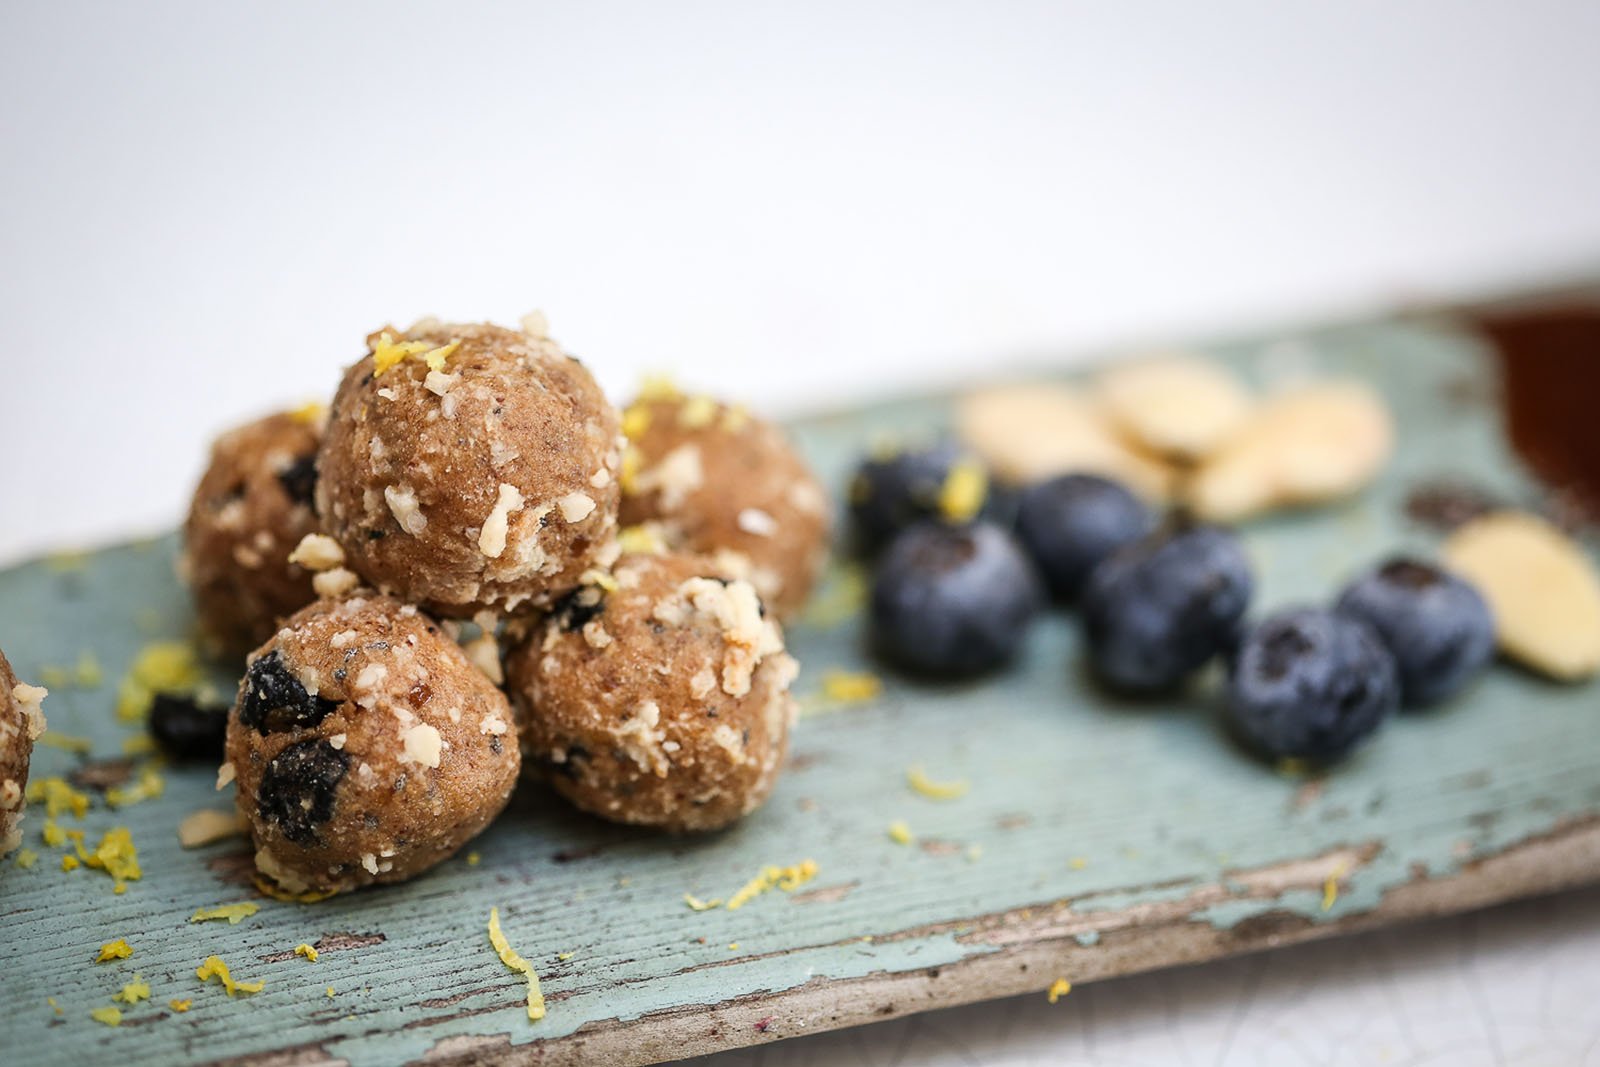 Vegan Blueberry & Chia protein balls on wooden board